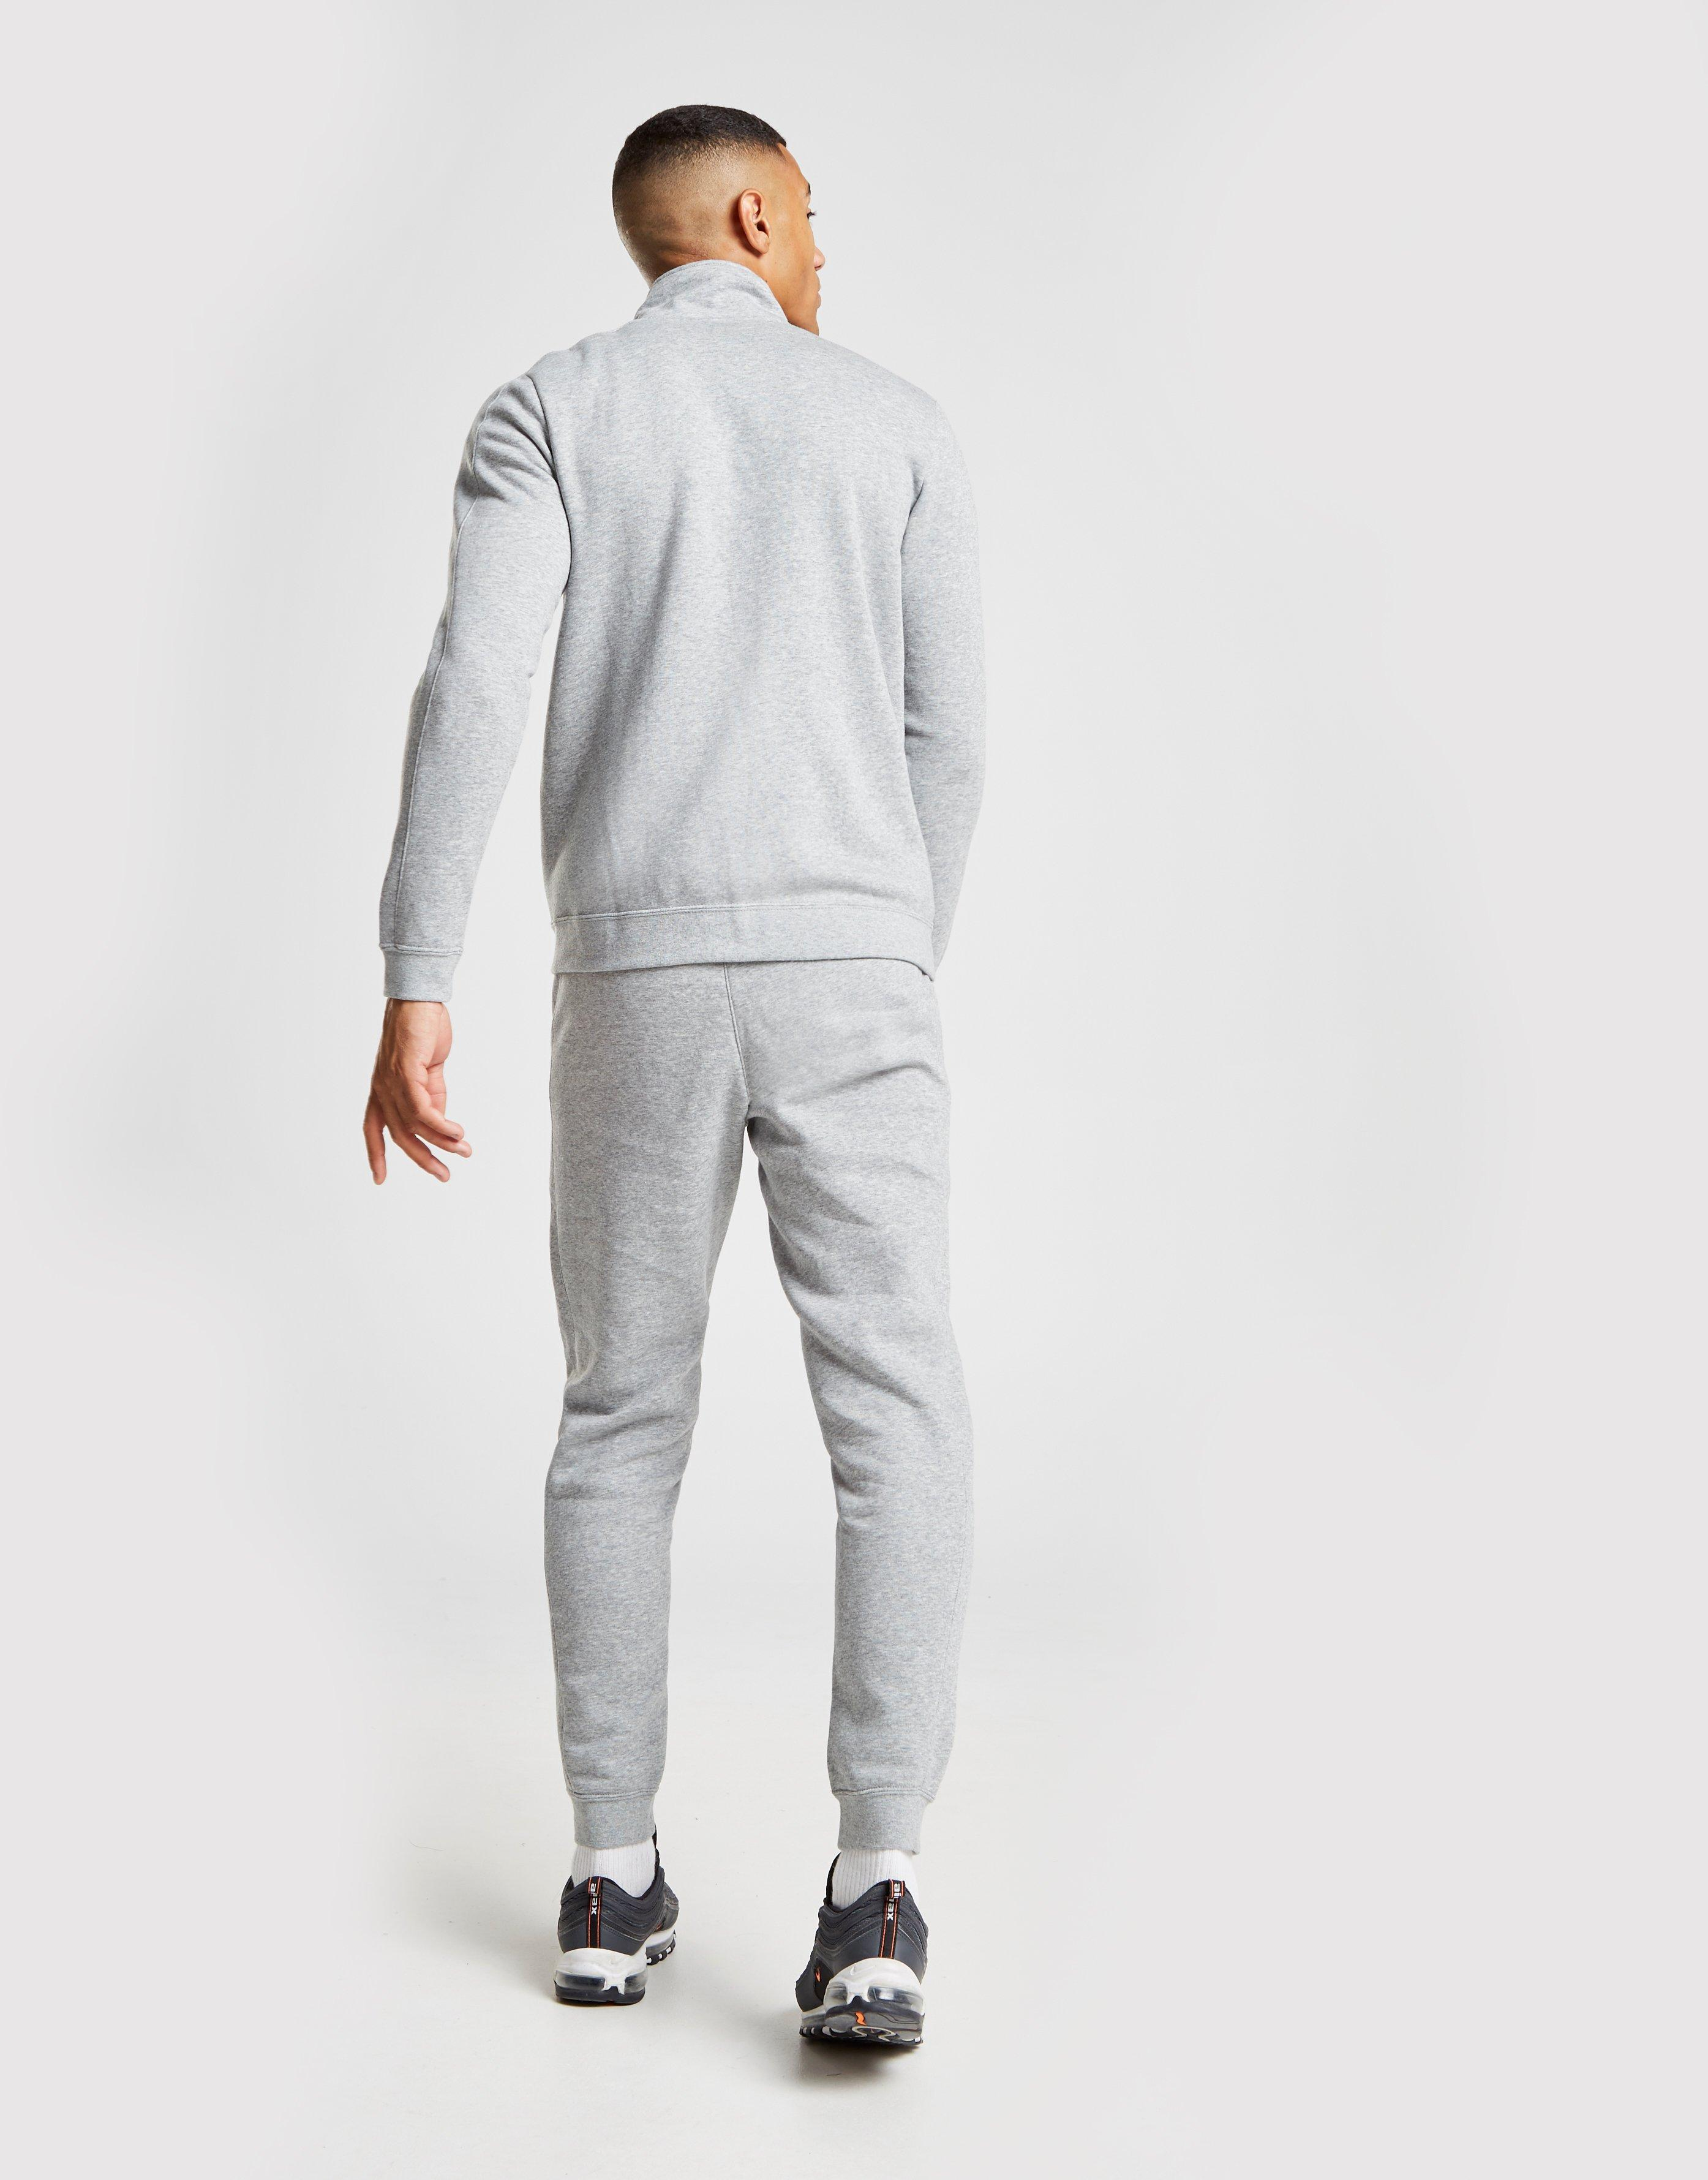 c5f8f2d6422f2 Gray Gray Gray Men Lyst Nike Tracksuit Tracksuit Tracksuit Fleece League  For In x0RXqrp0